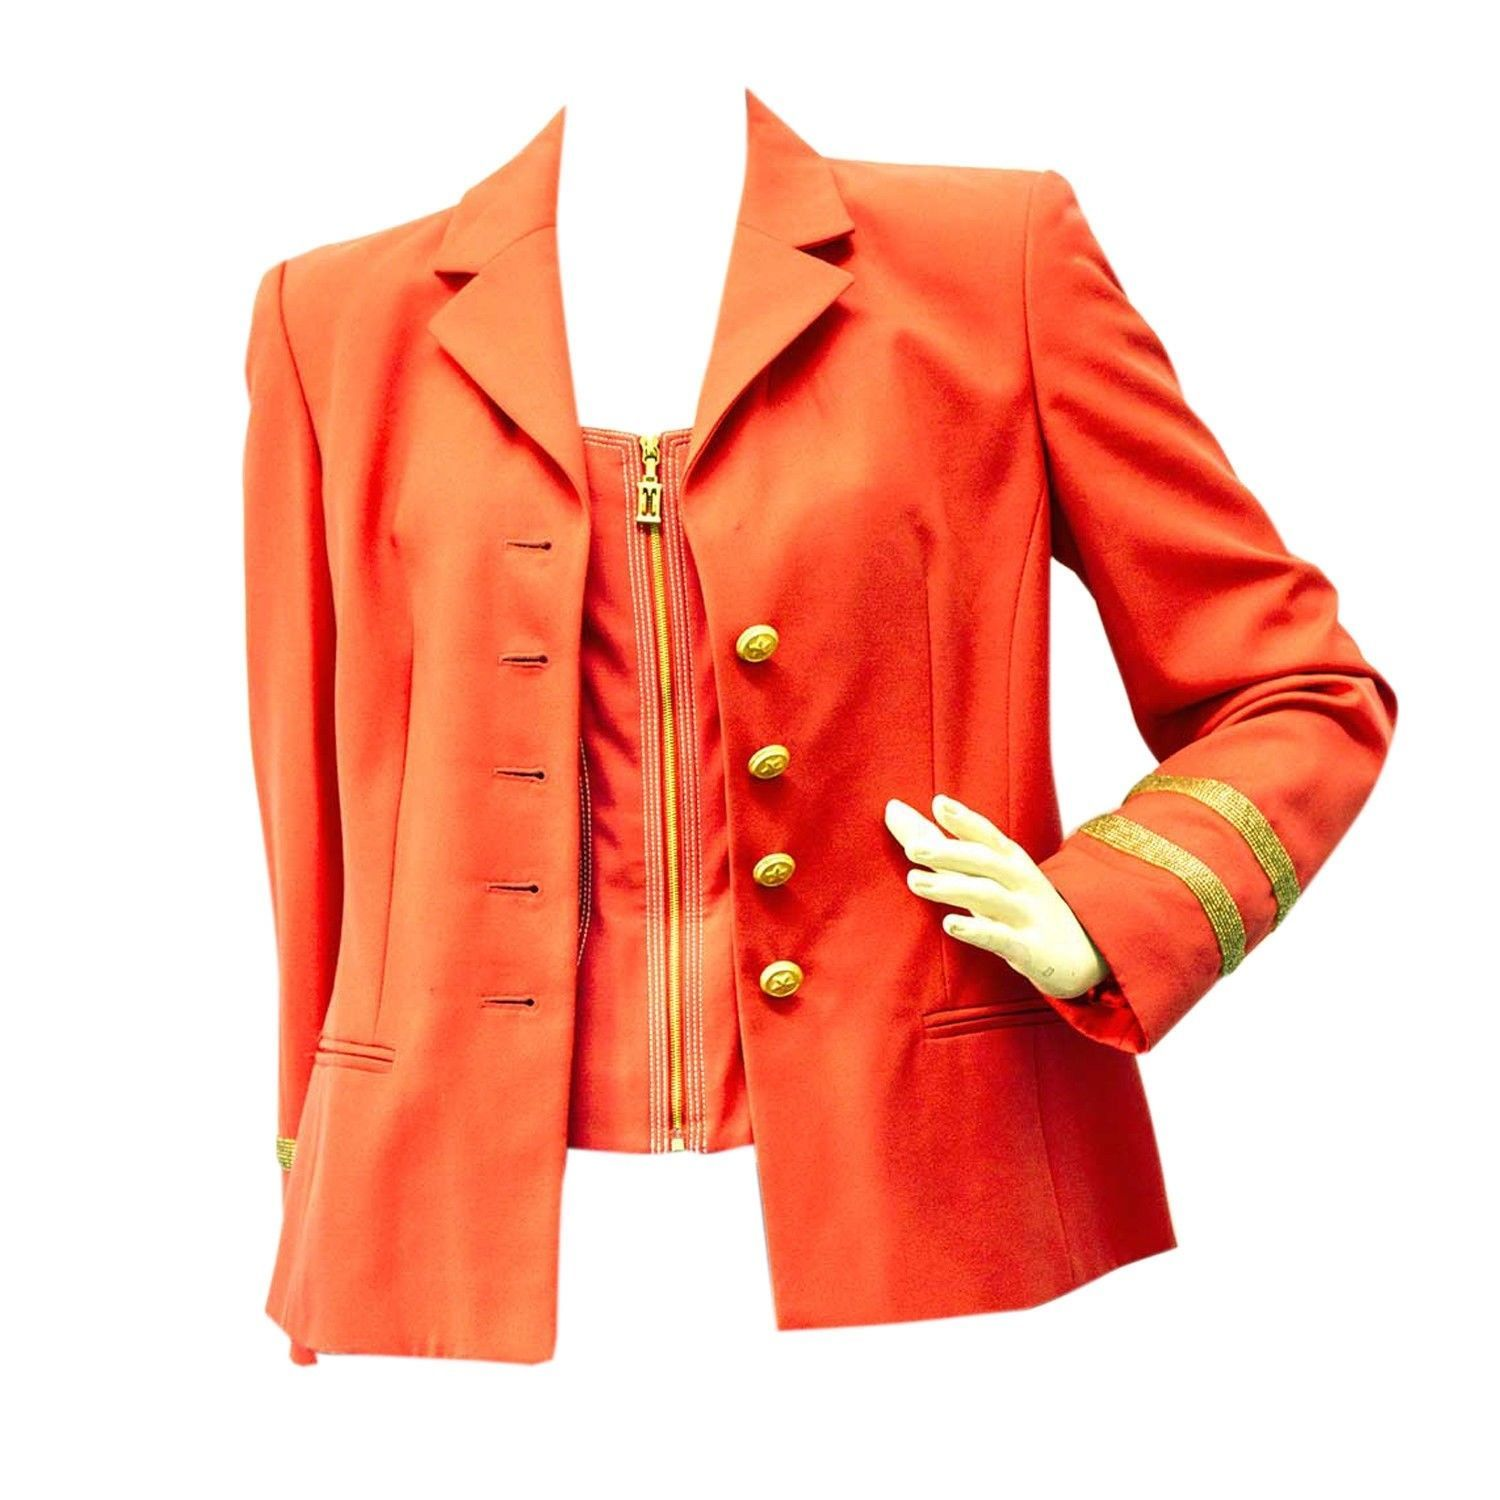 Vintage Escada Blazer and Bustier Set in Bright Orange almost Red - SZ36 / 34 - $226.71